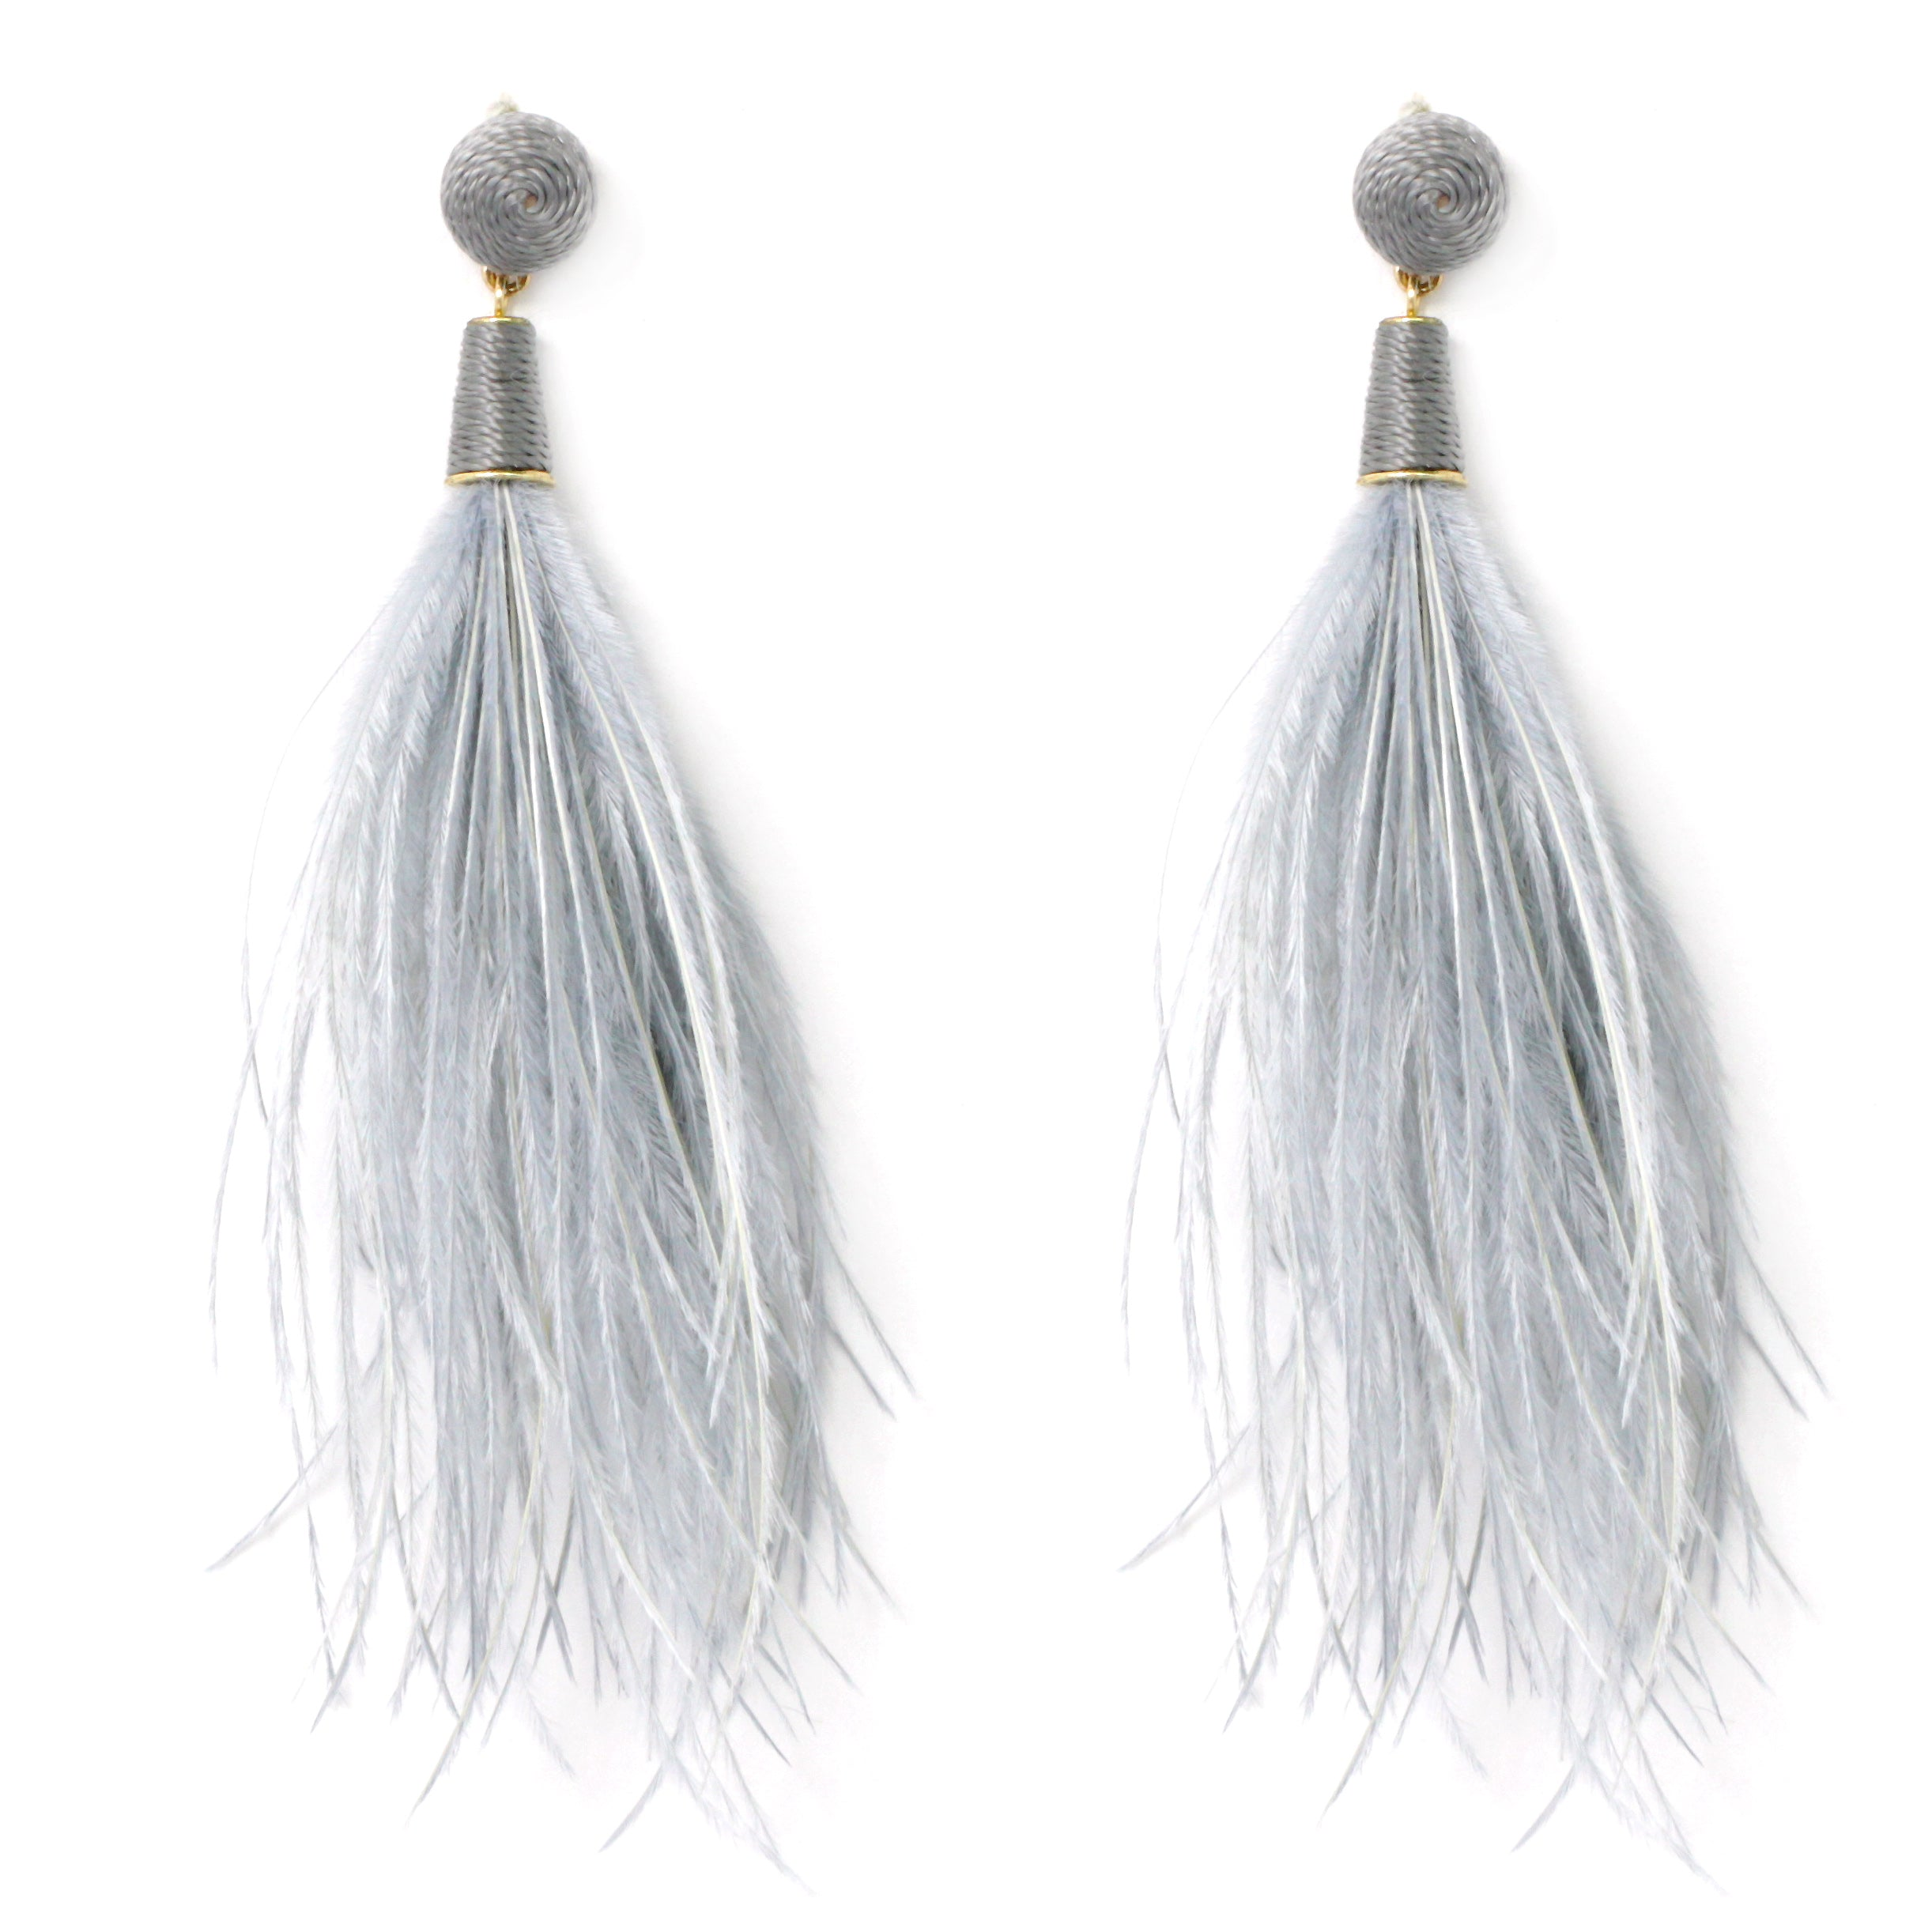 products waterfall gold fullsizerender in fringe hooligan dainty boutique earrings